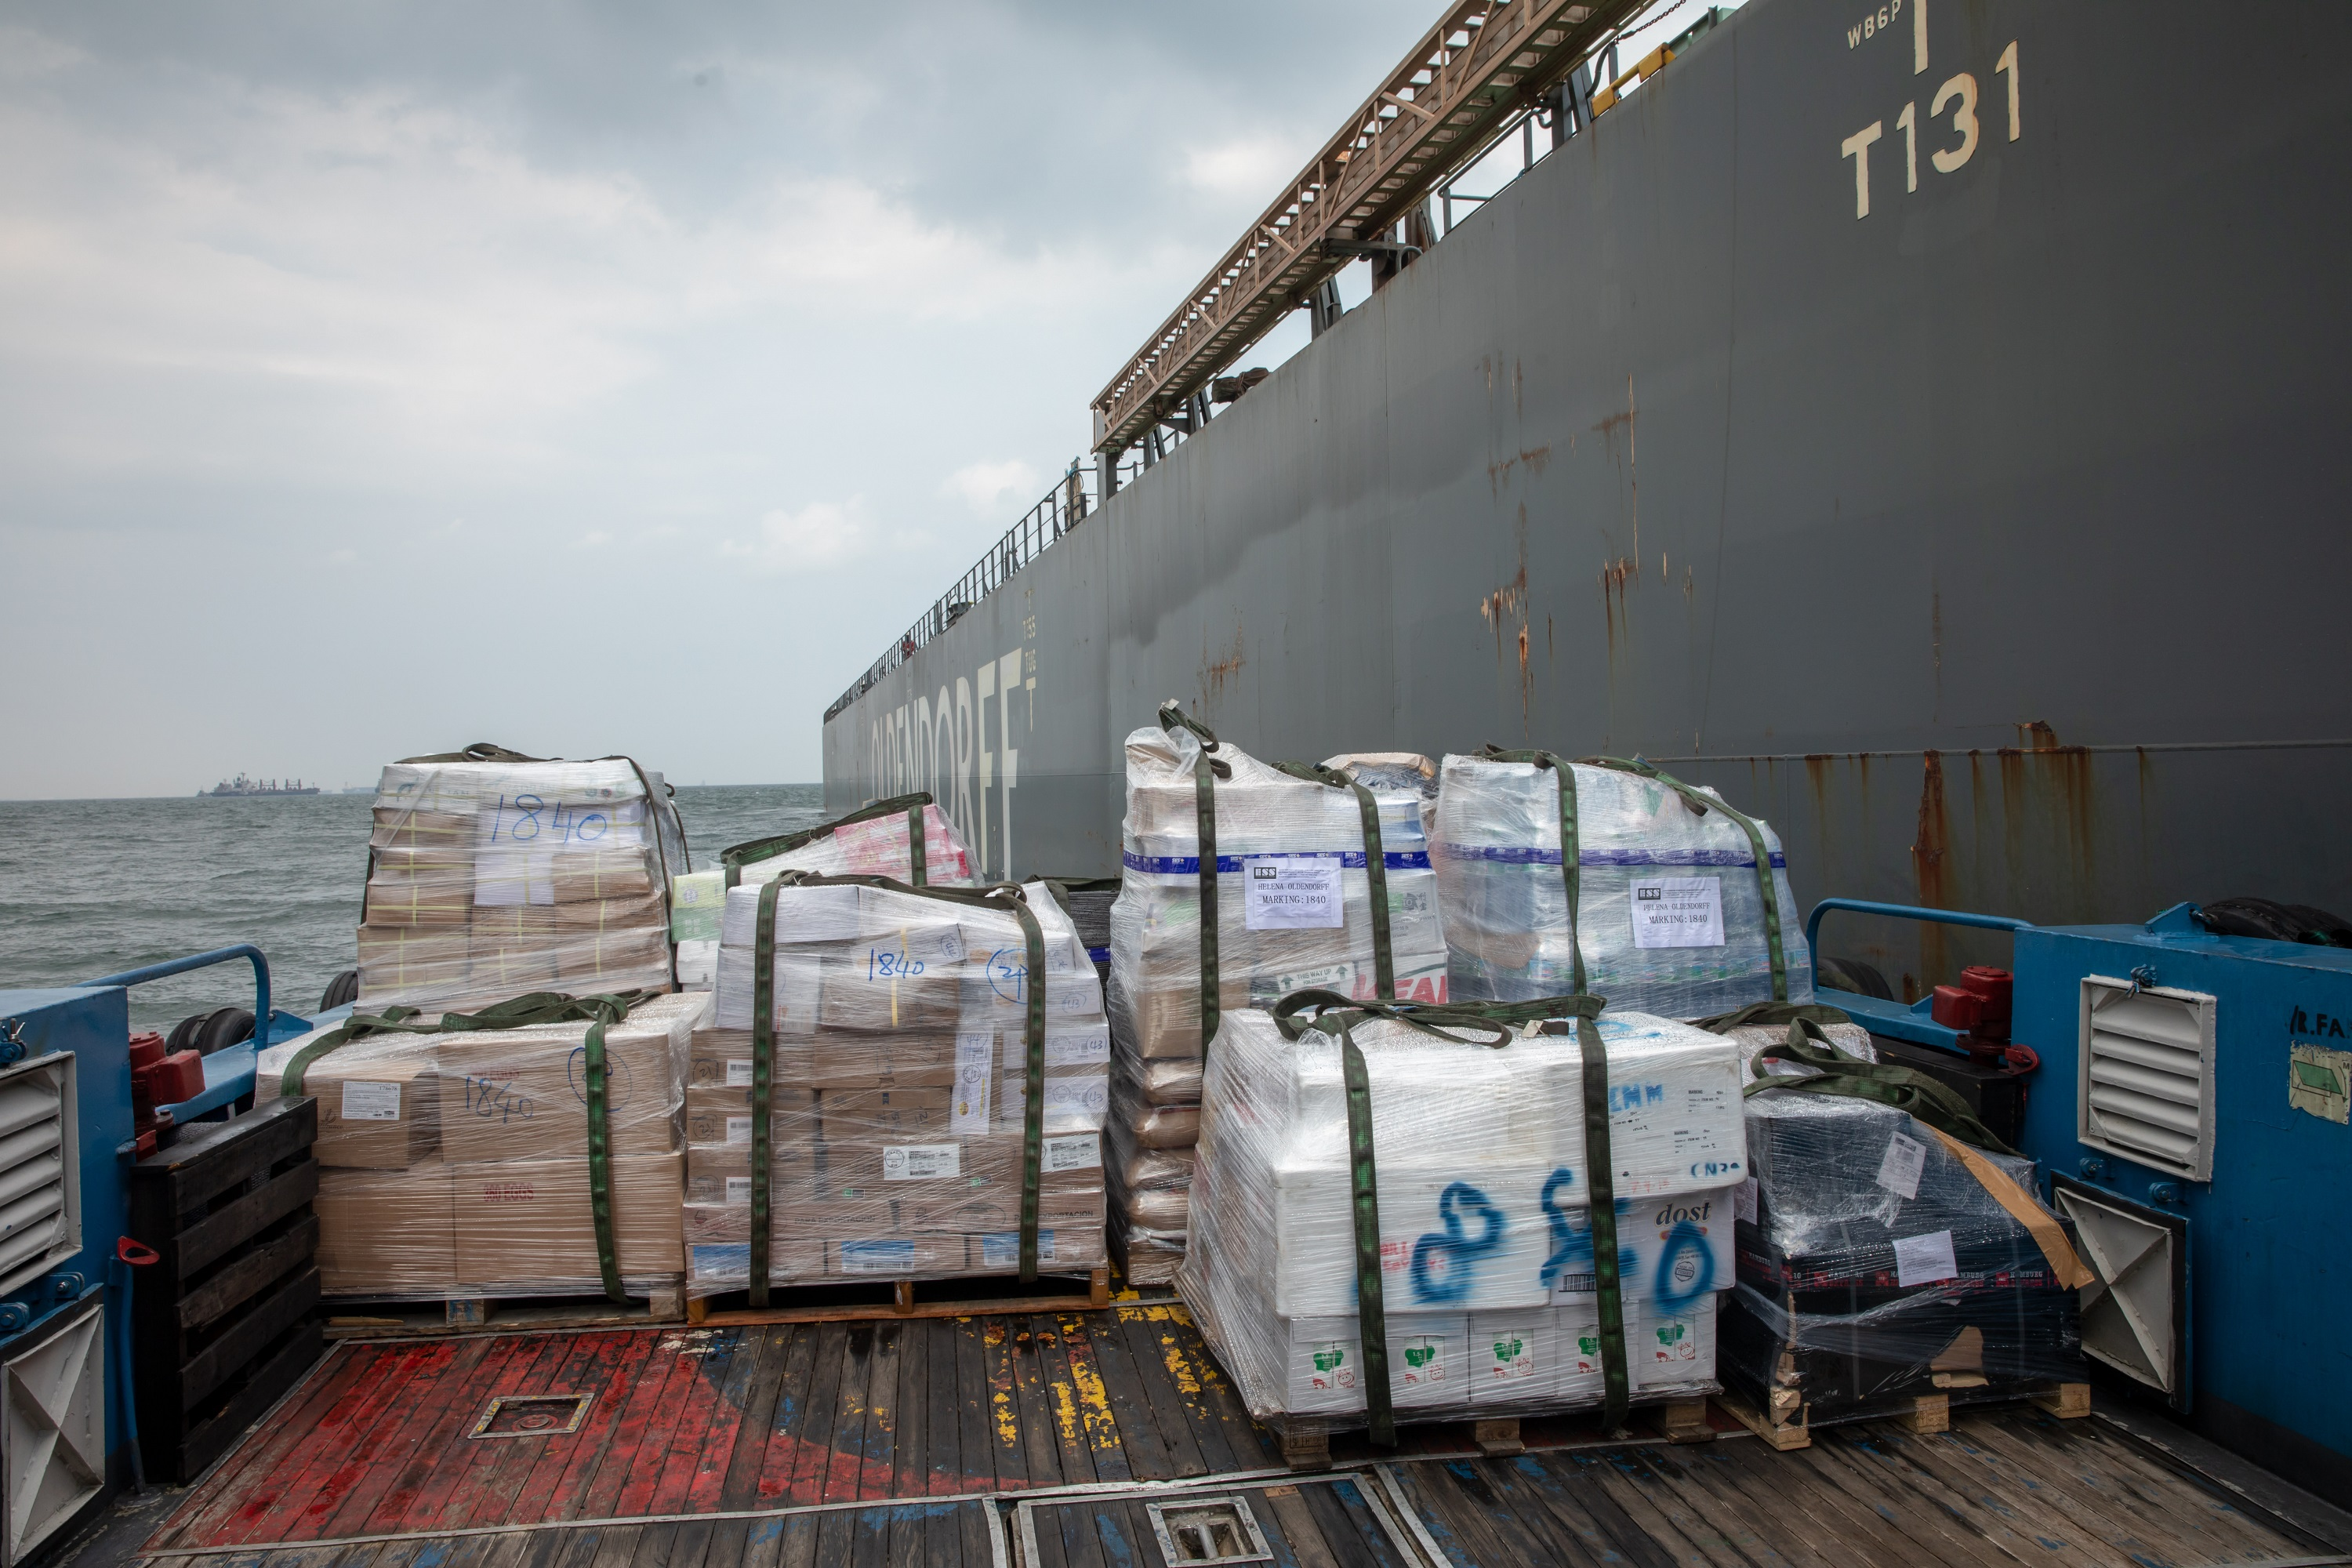 Logistics support, Supplies to main ship, ESS, Support in global ports, Offices in Shanghai, Singapore, Panama